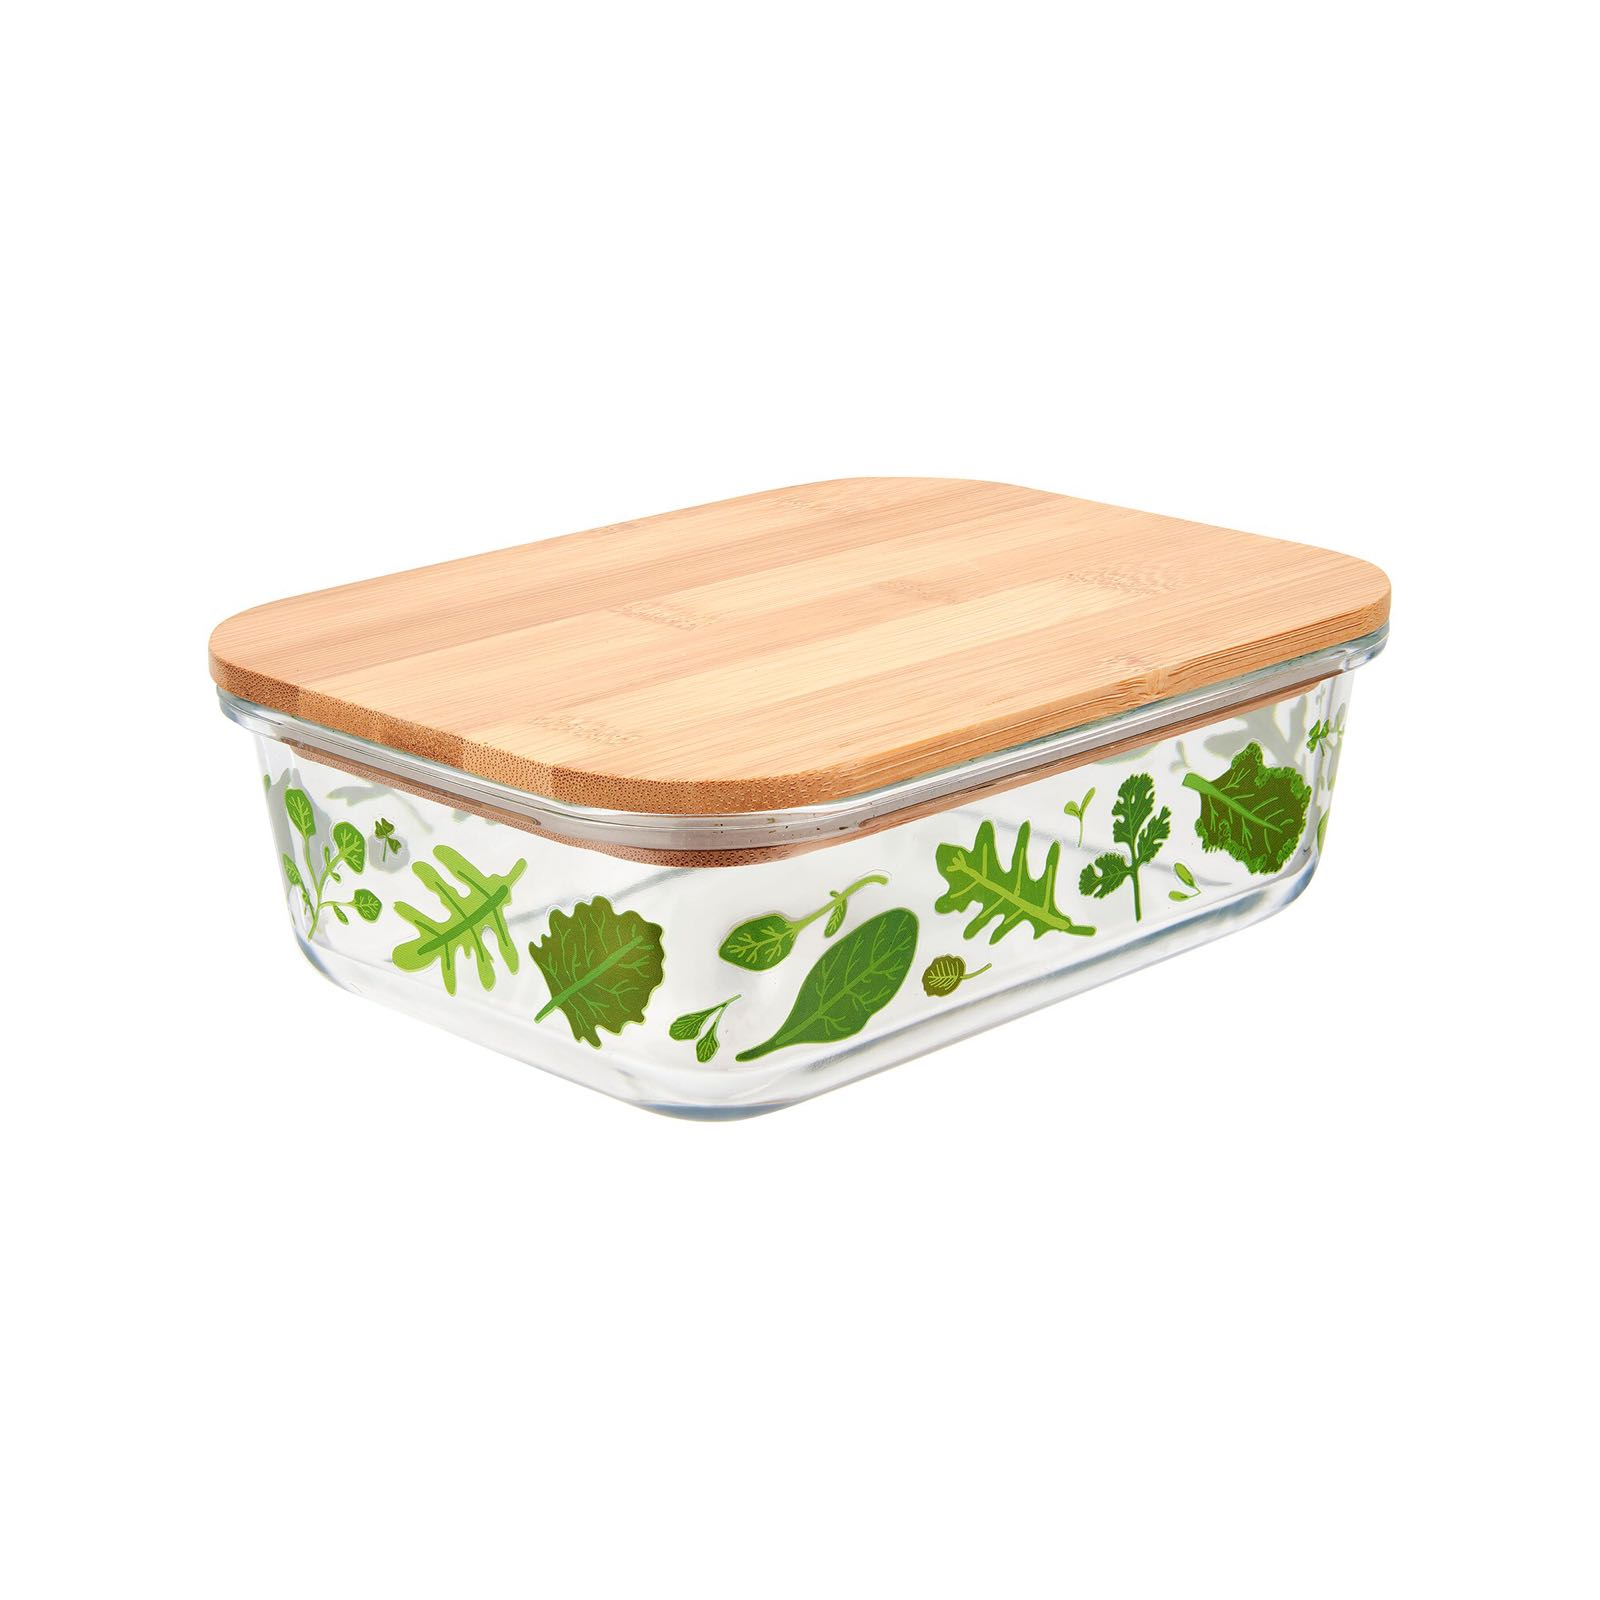 Powered By Plants Glass Storage Box - Large (Was £16.00)